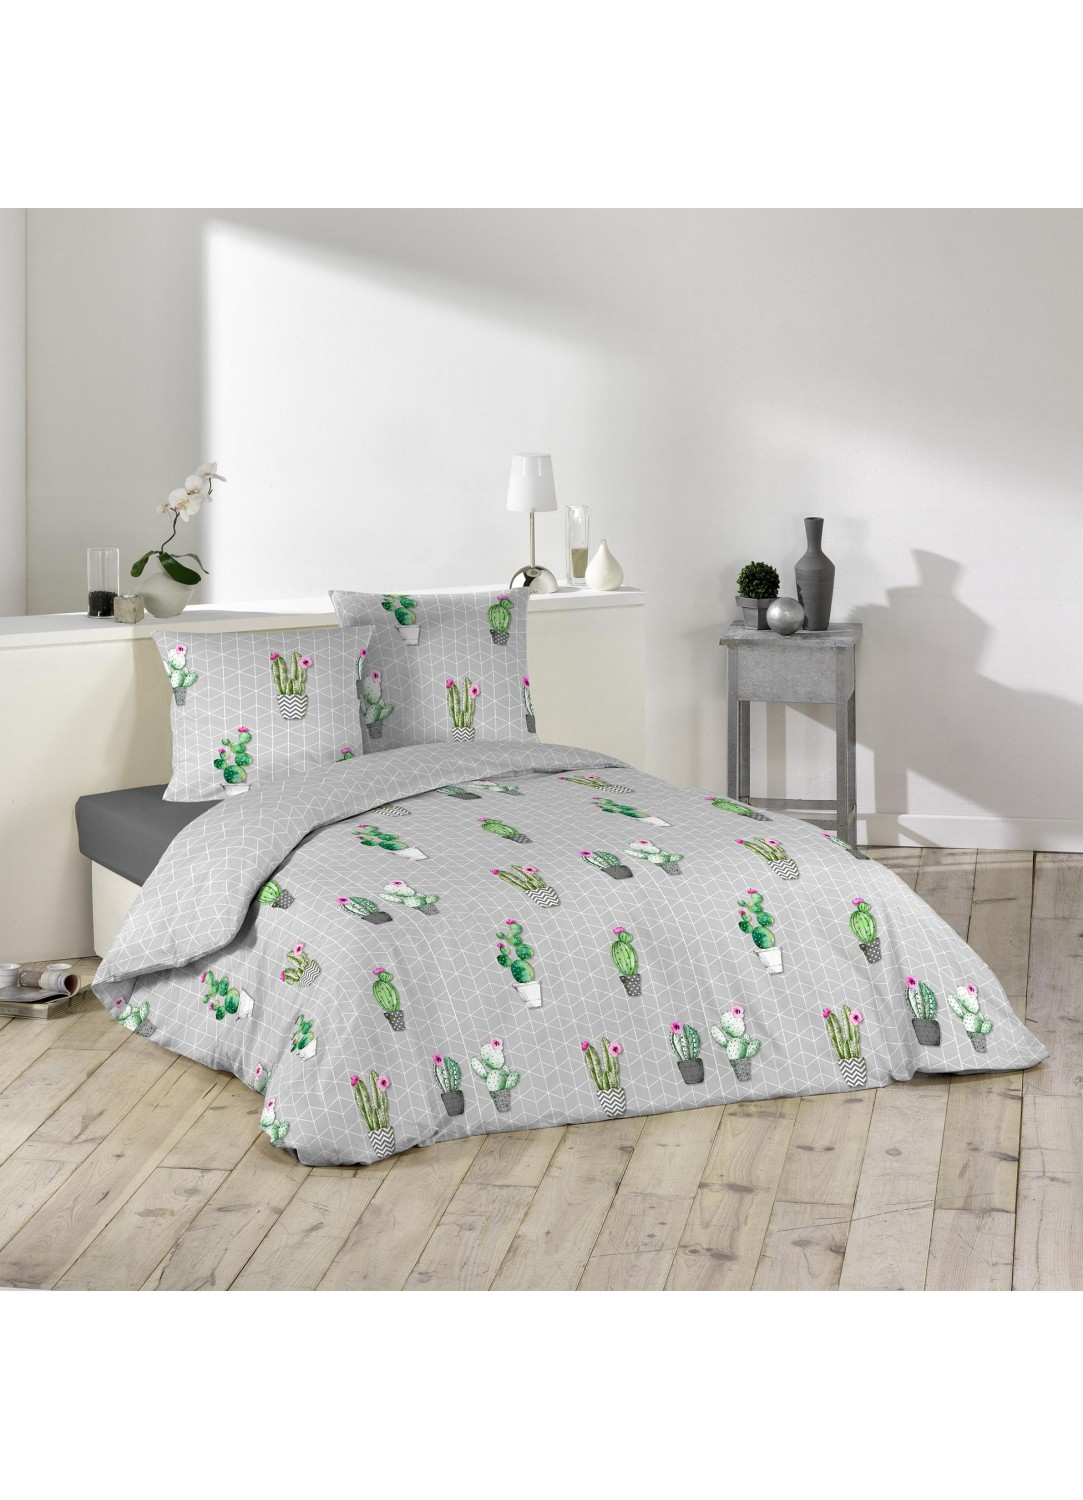 parure de lit imprim e cactus multicolors homemaison vente en ligne parures de lit. Black Bedroom Furniture Sets. Home Design Ideas